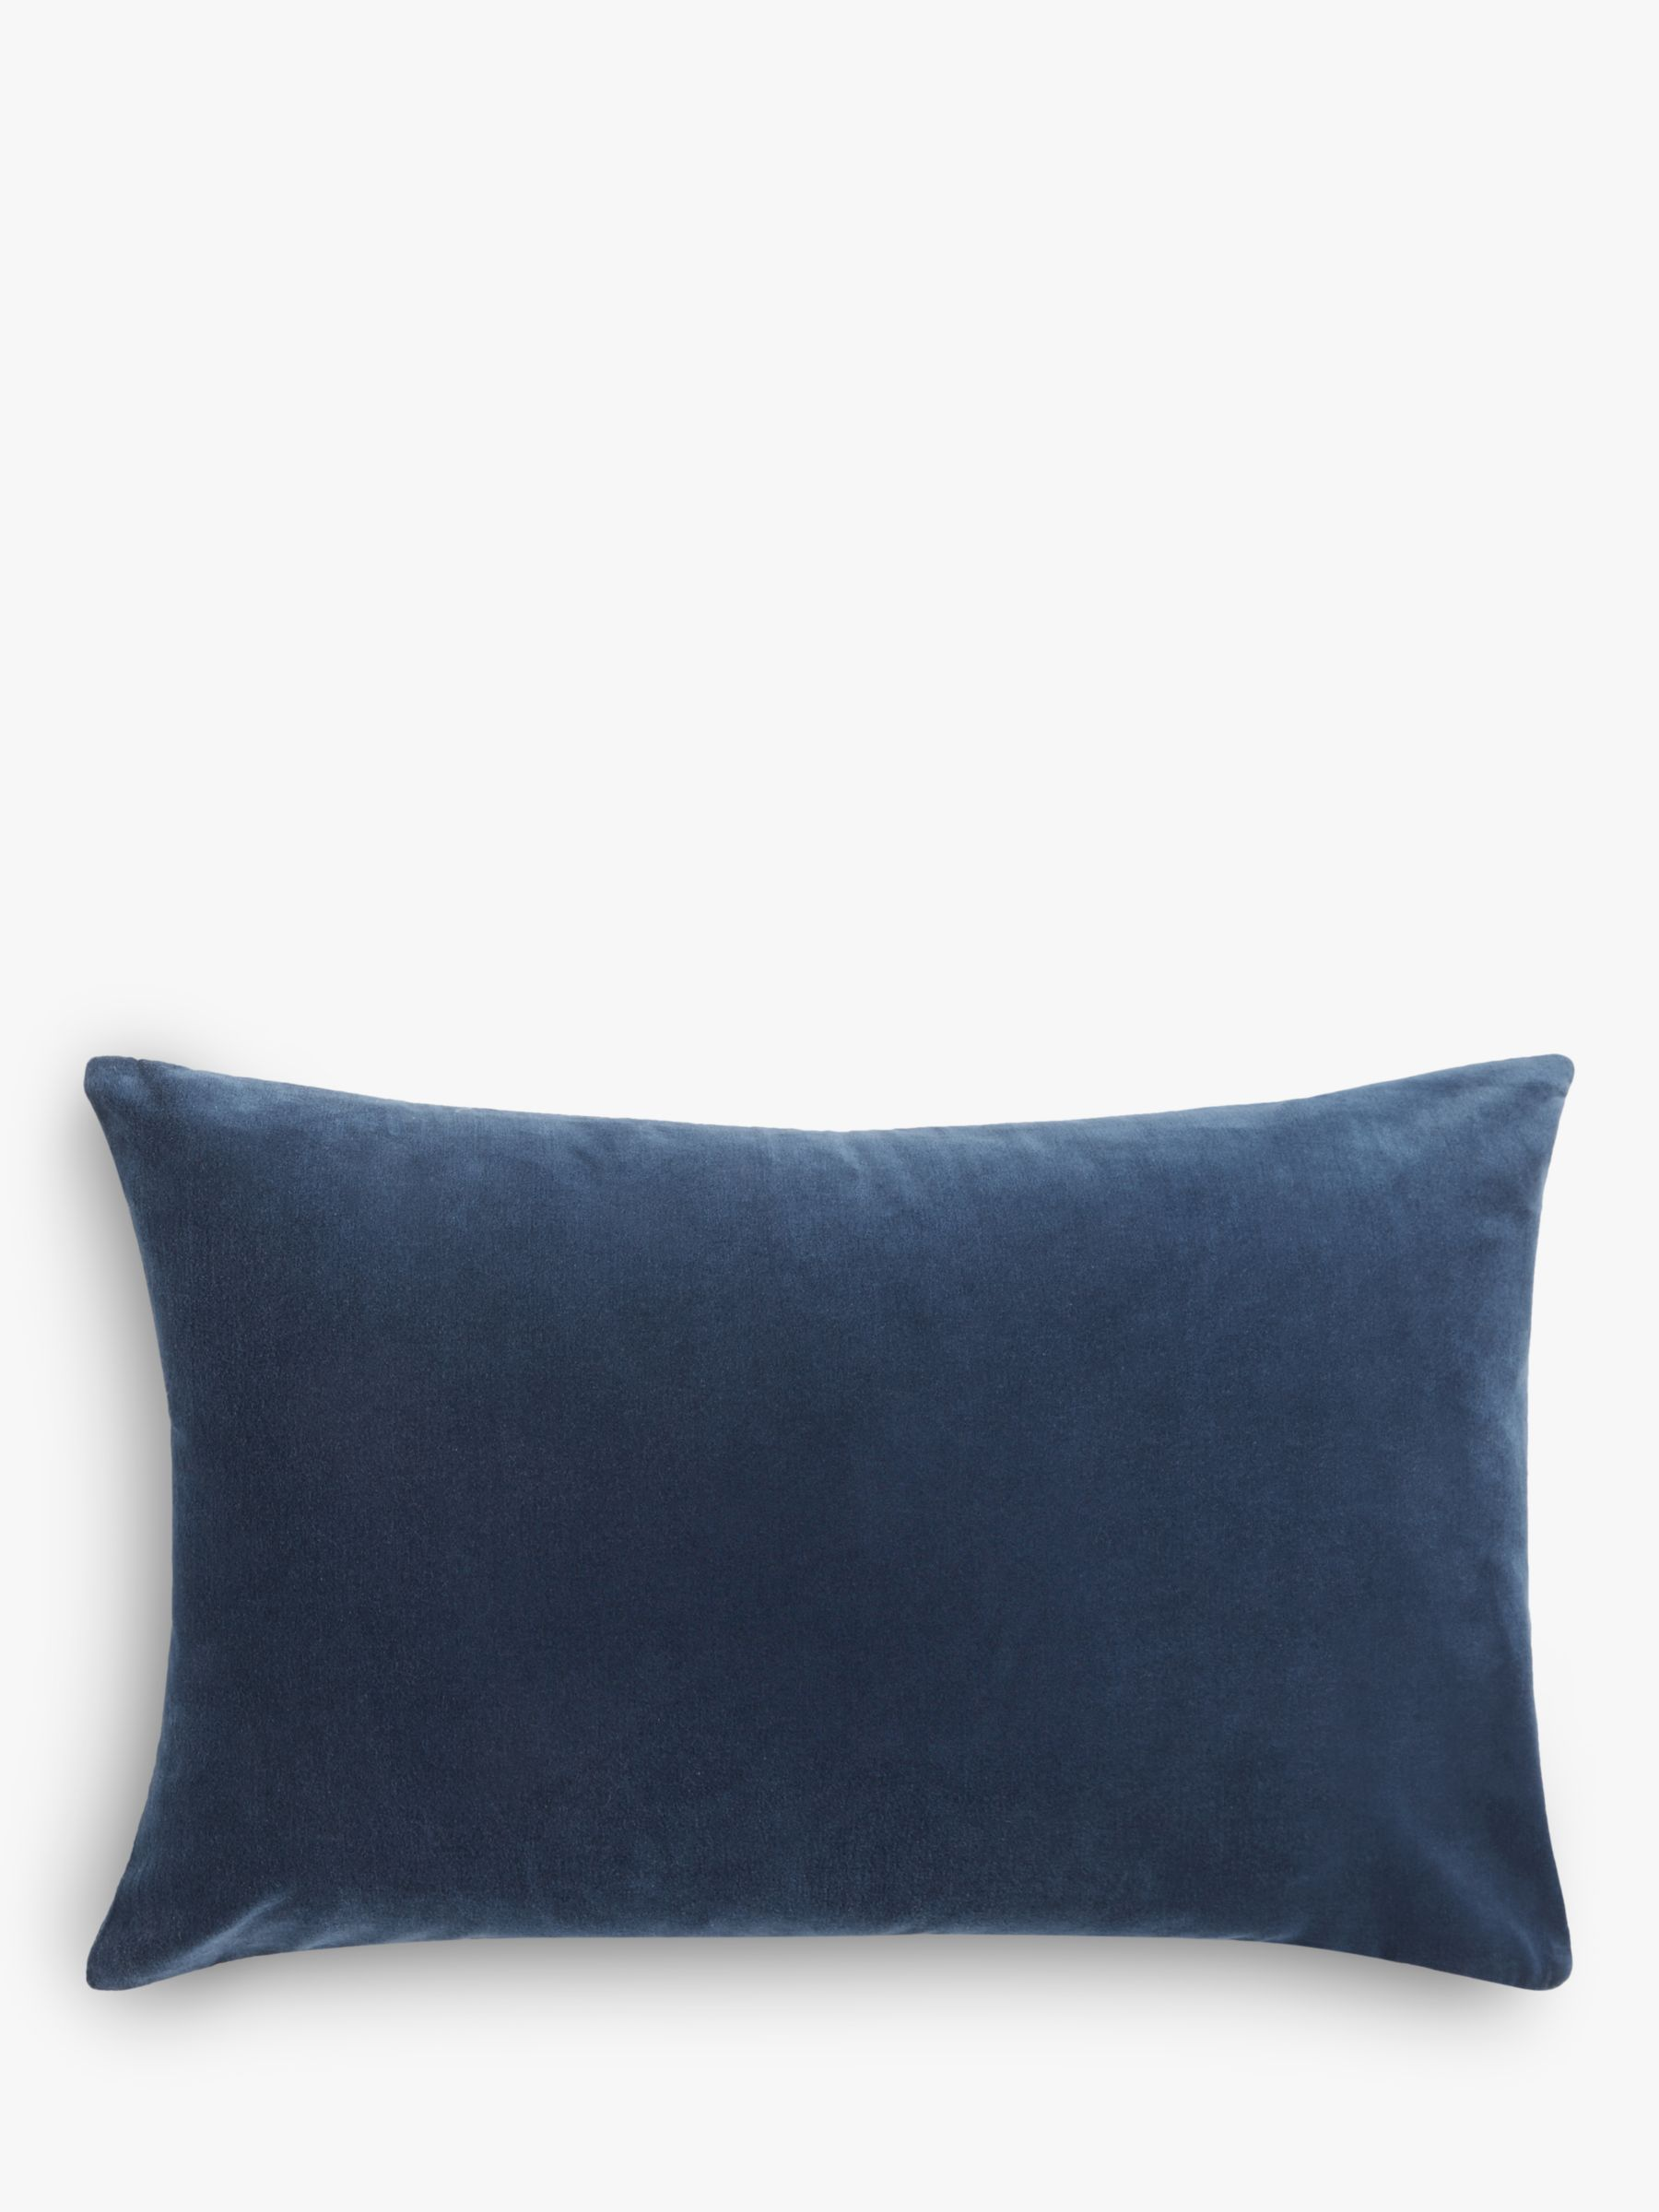 Buy John Lewis & Partners Rectangular Cotton Velvet Cushion, Navy Online at johnlewis.com